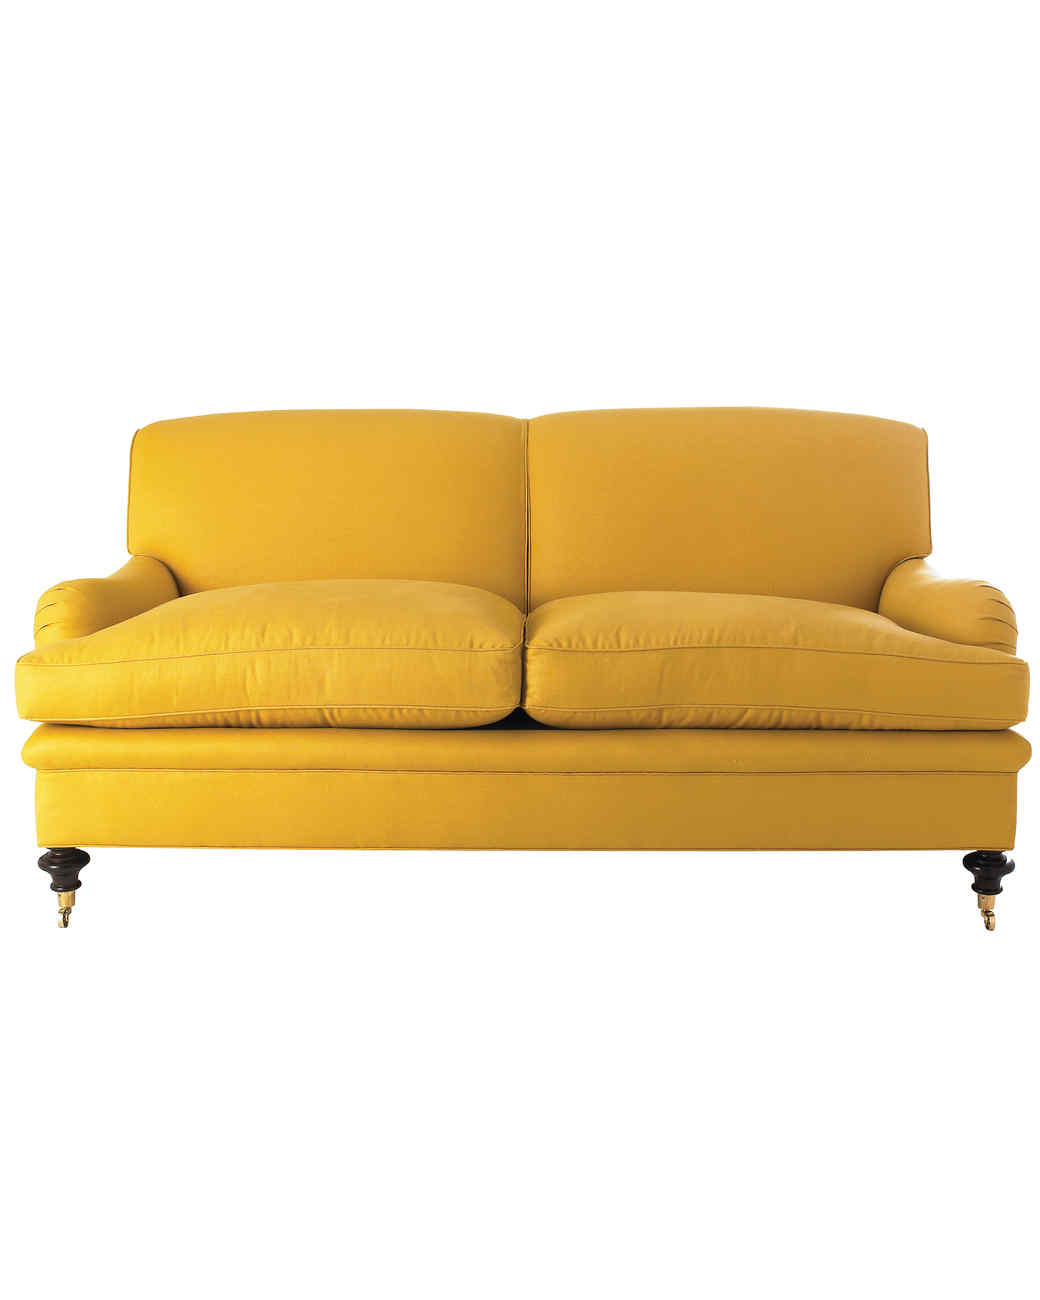 fleas in sofa no pets 4 seater loose covers 13 steps to a stunning makeover martha stewart